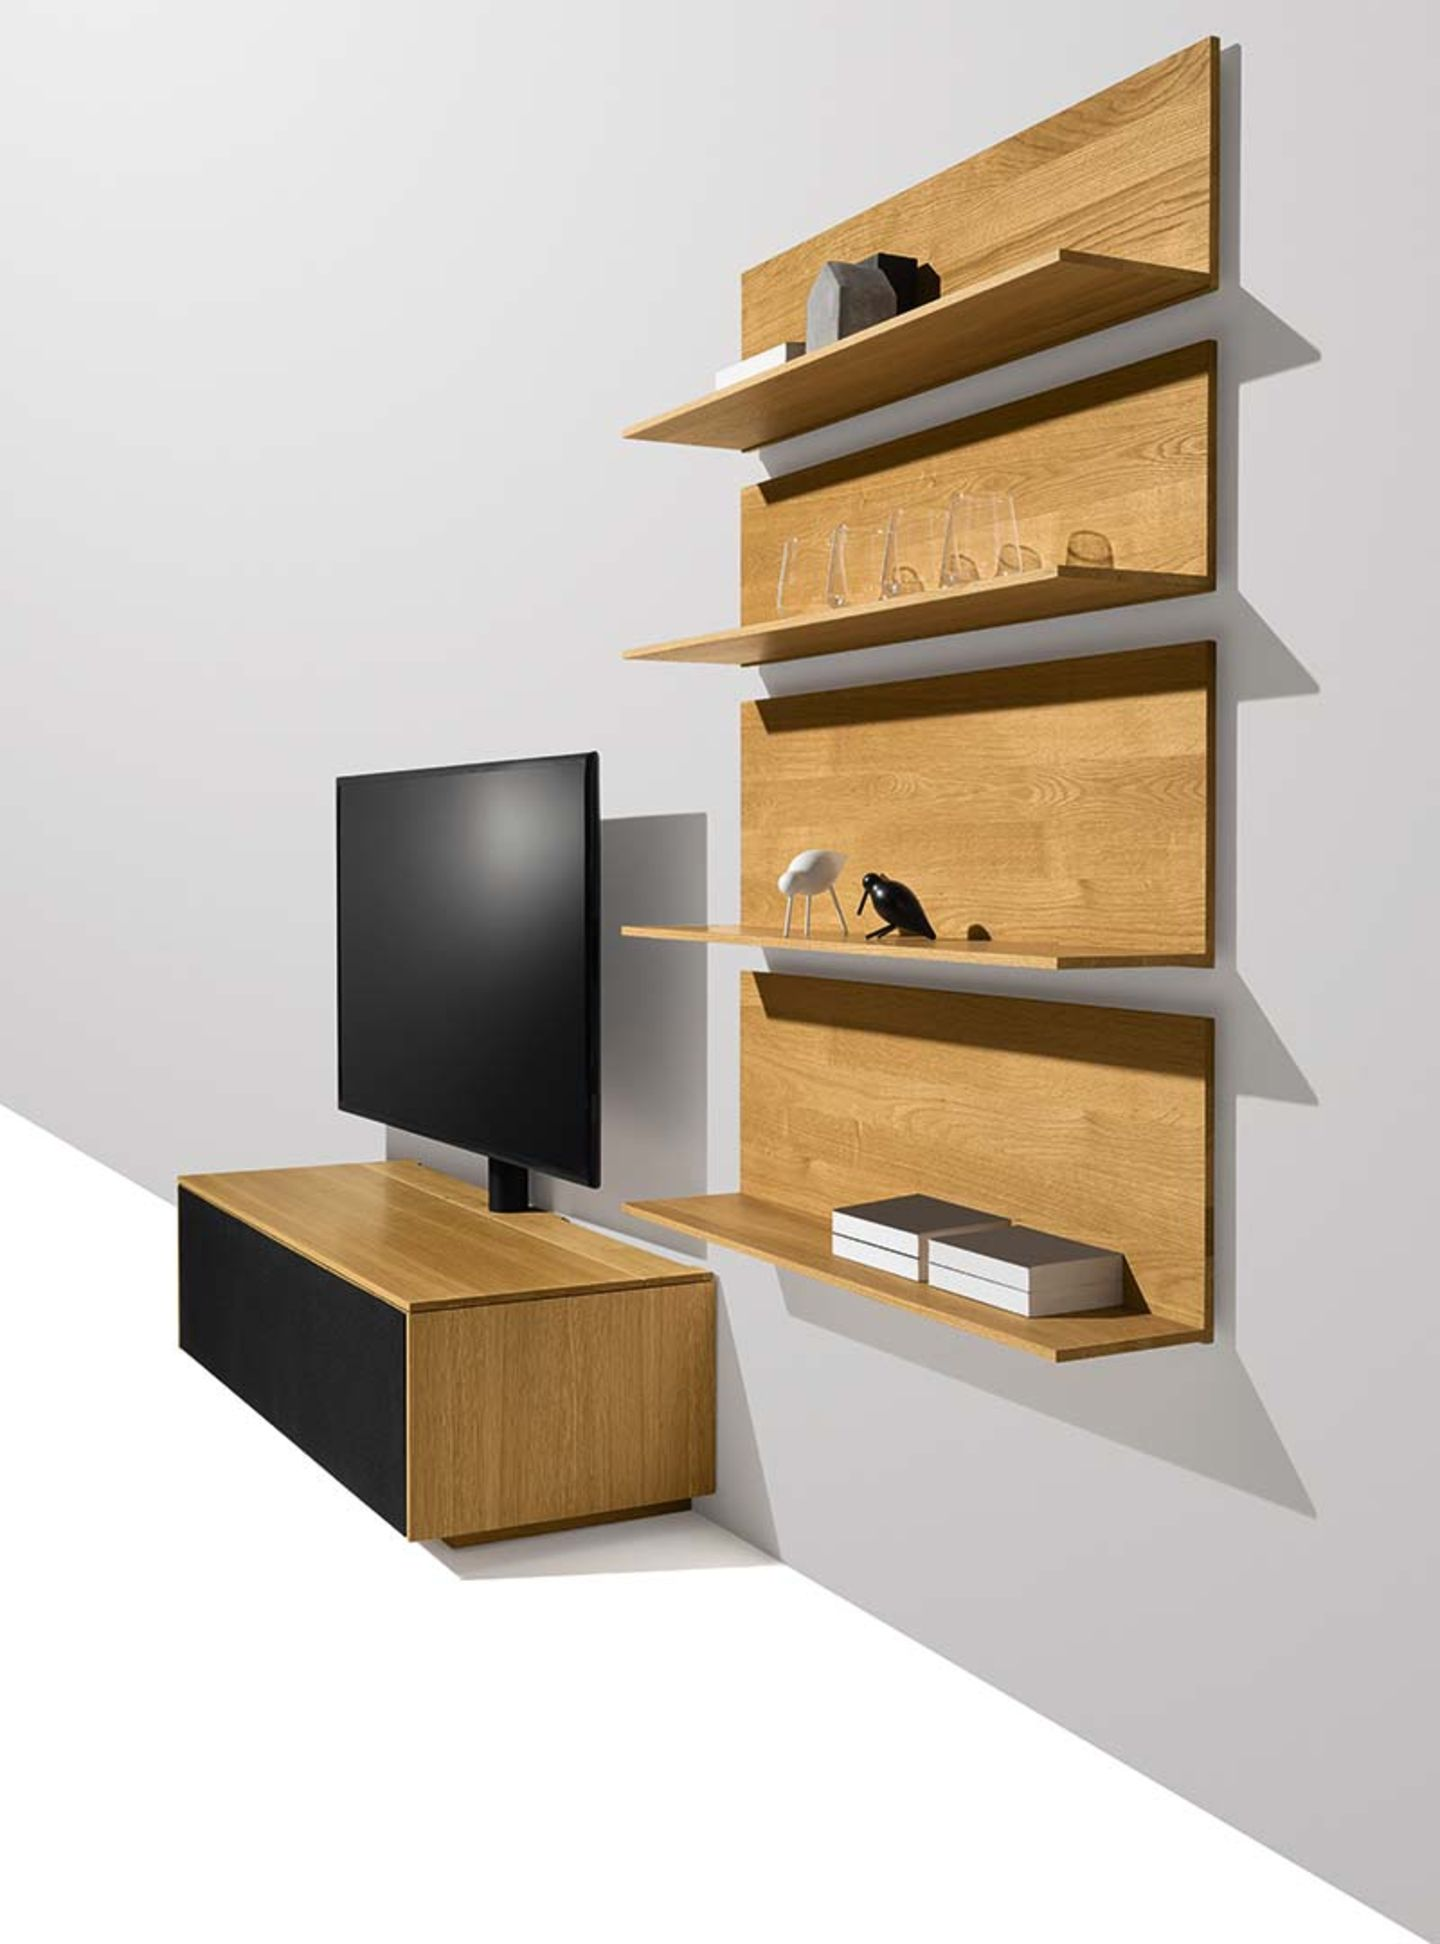 filigno Home Entertainment in oak made of solid wood